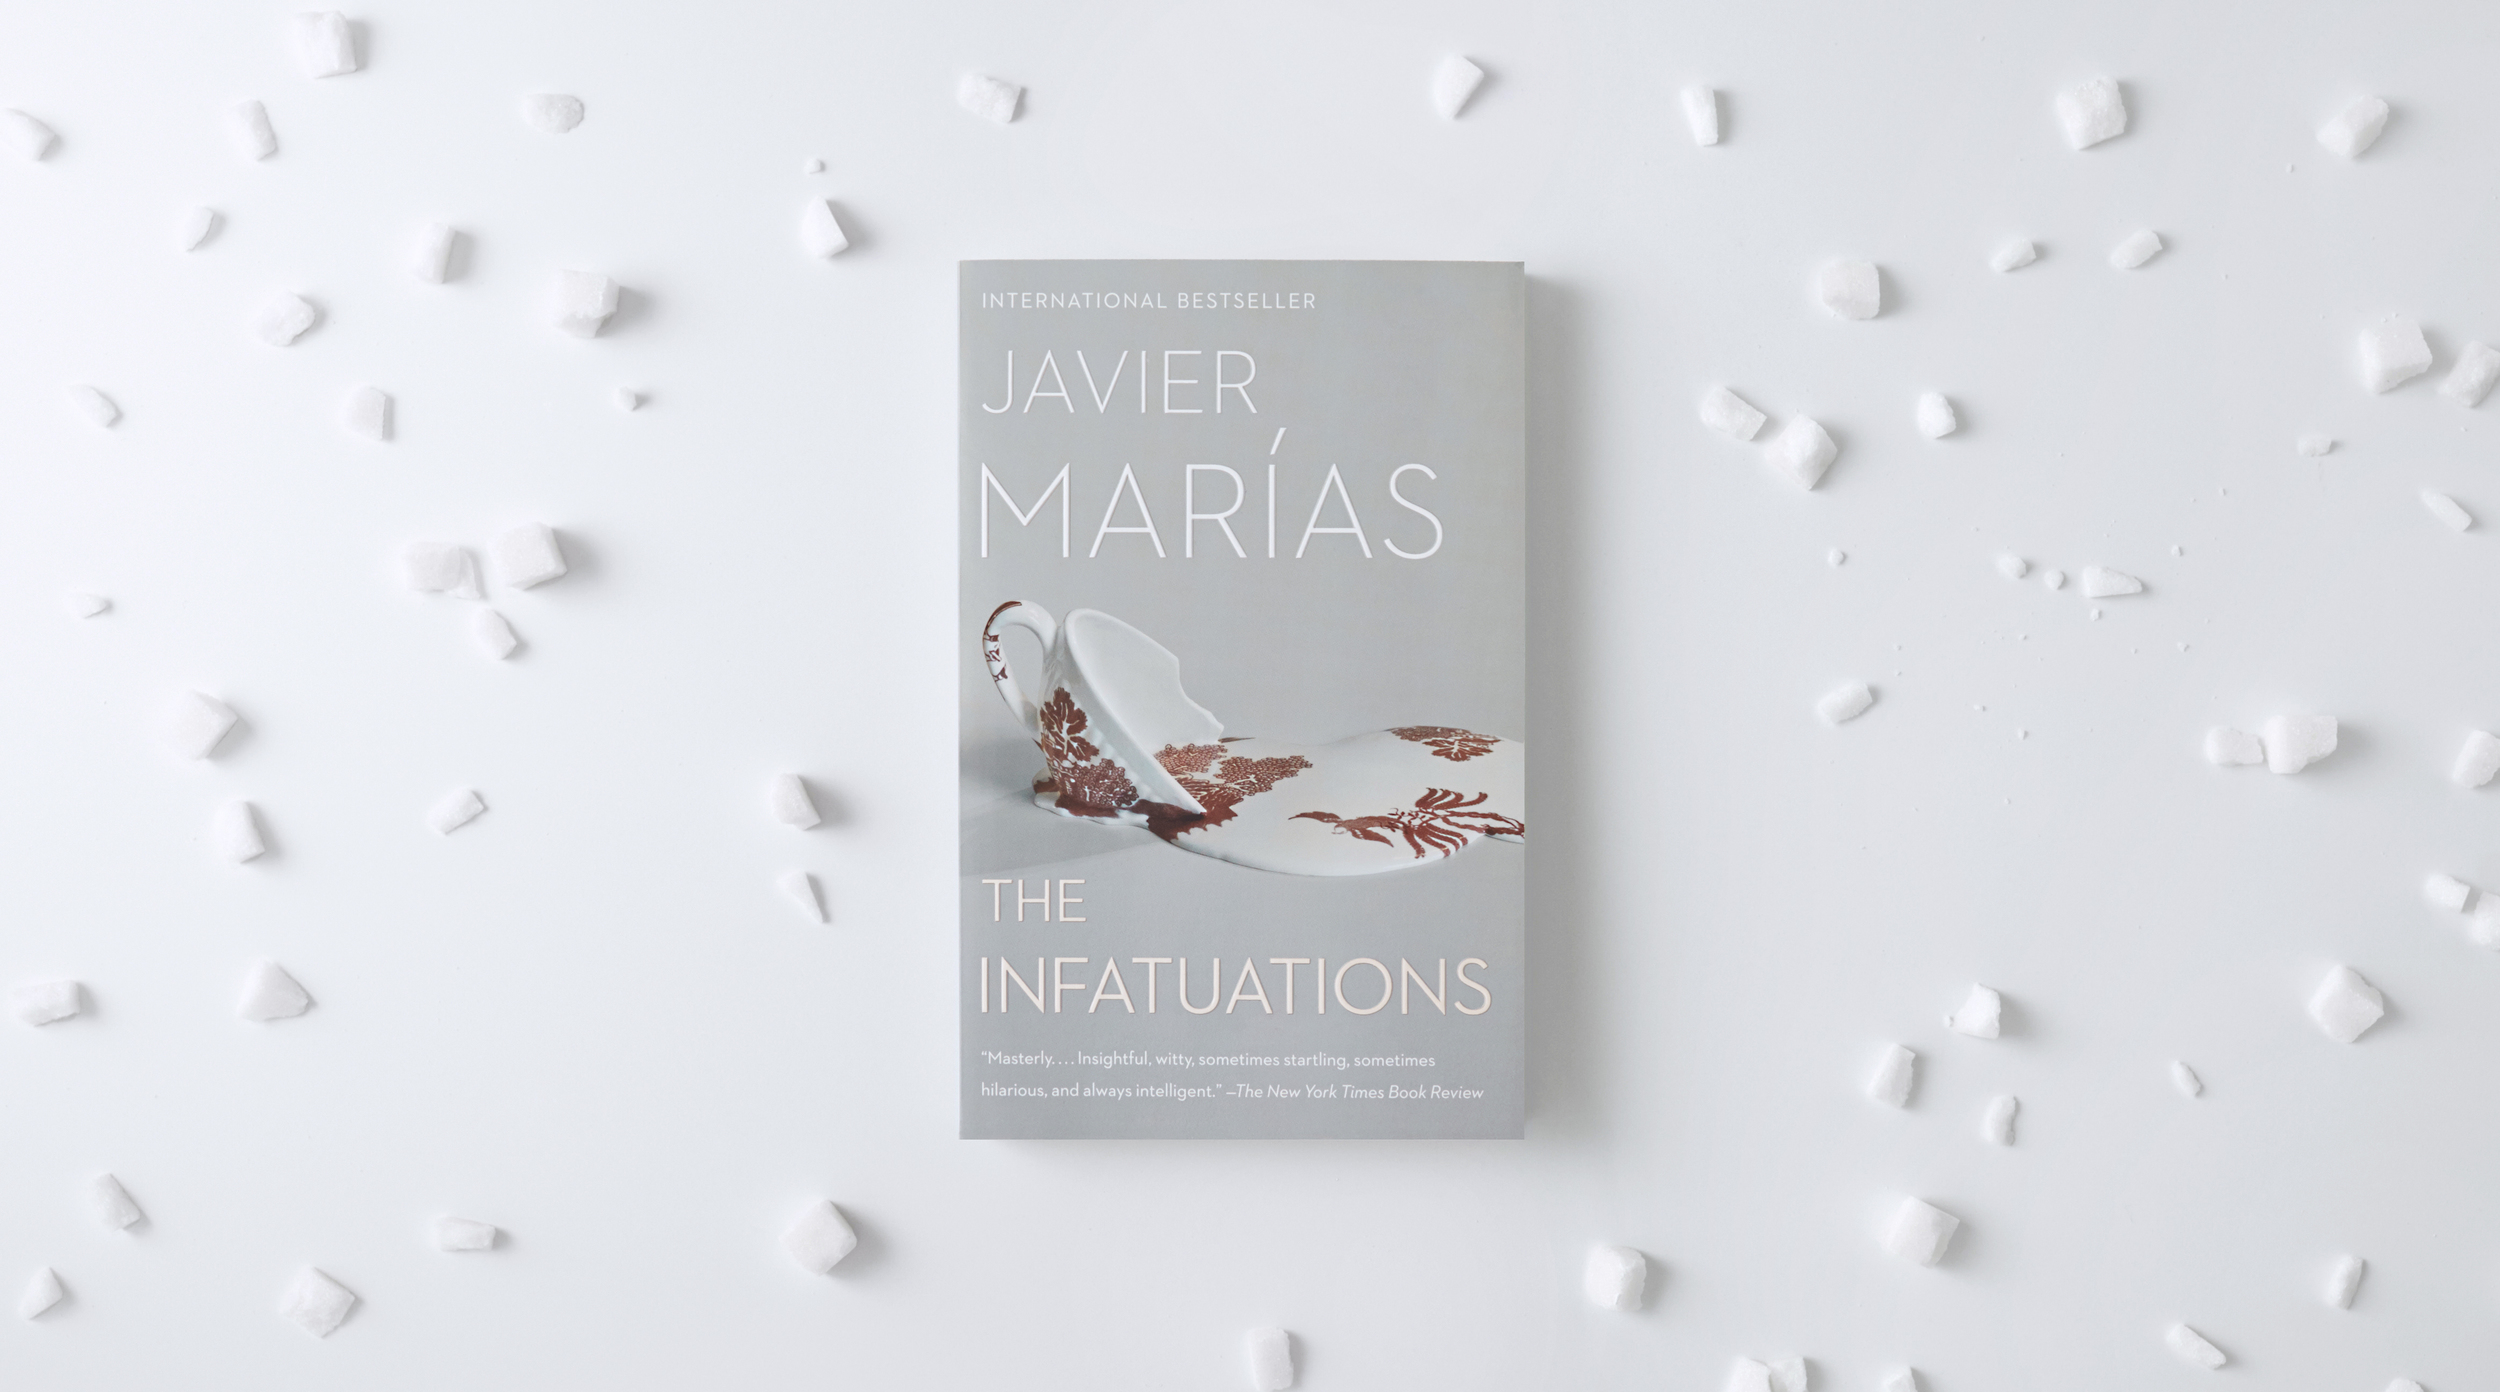 Cover design by Isabel Urbina Peña